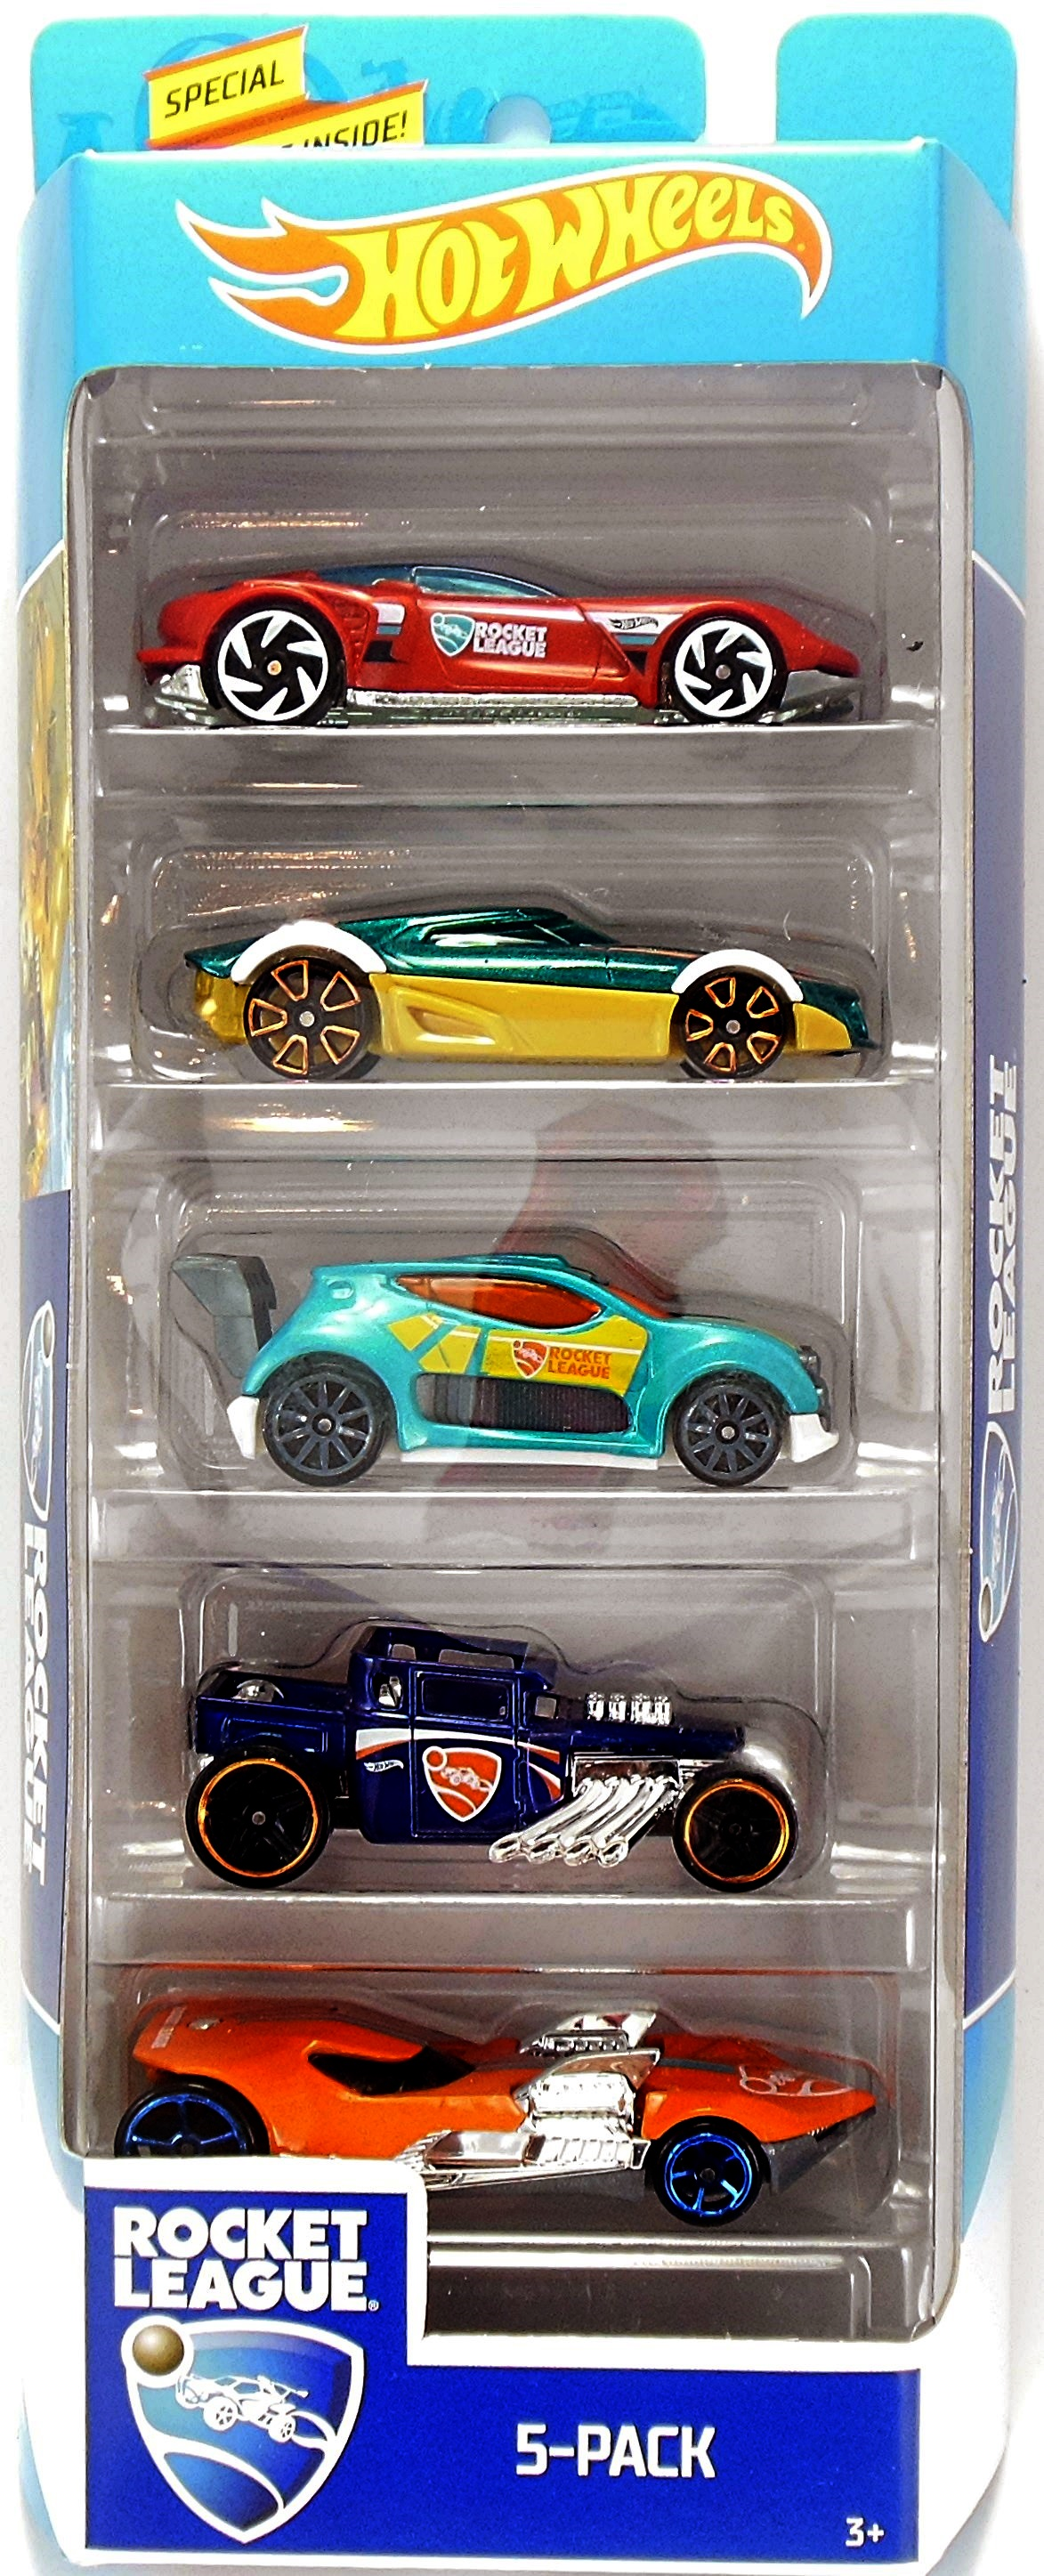 2019 5 packs hot wheels newsletter. Black Bedroom Furniture Sets. Home Design Ideas